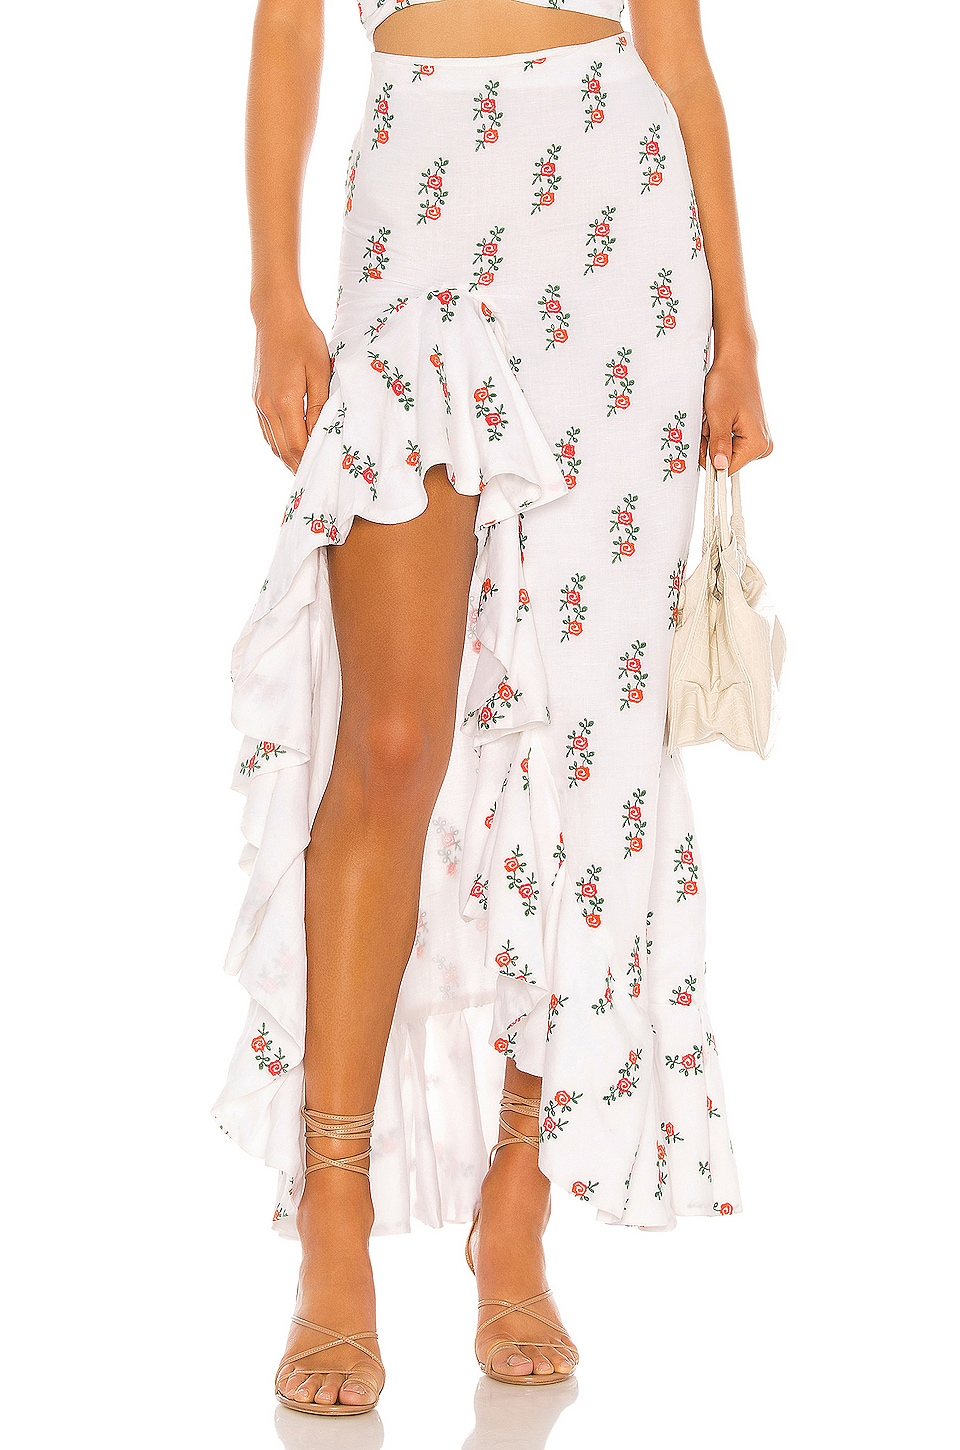 All Things Mochi Clara Skirt in White Red